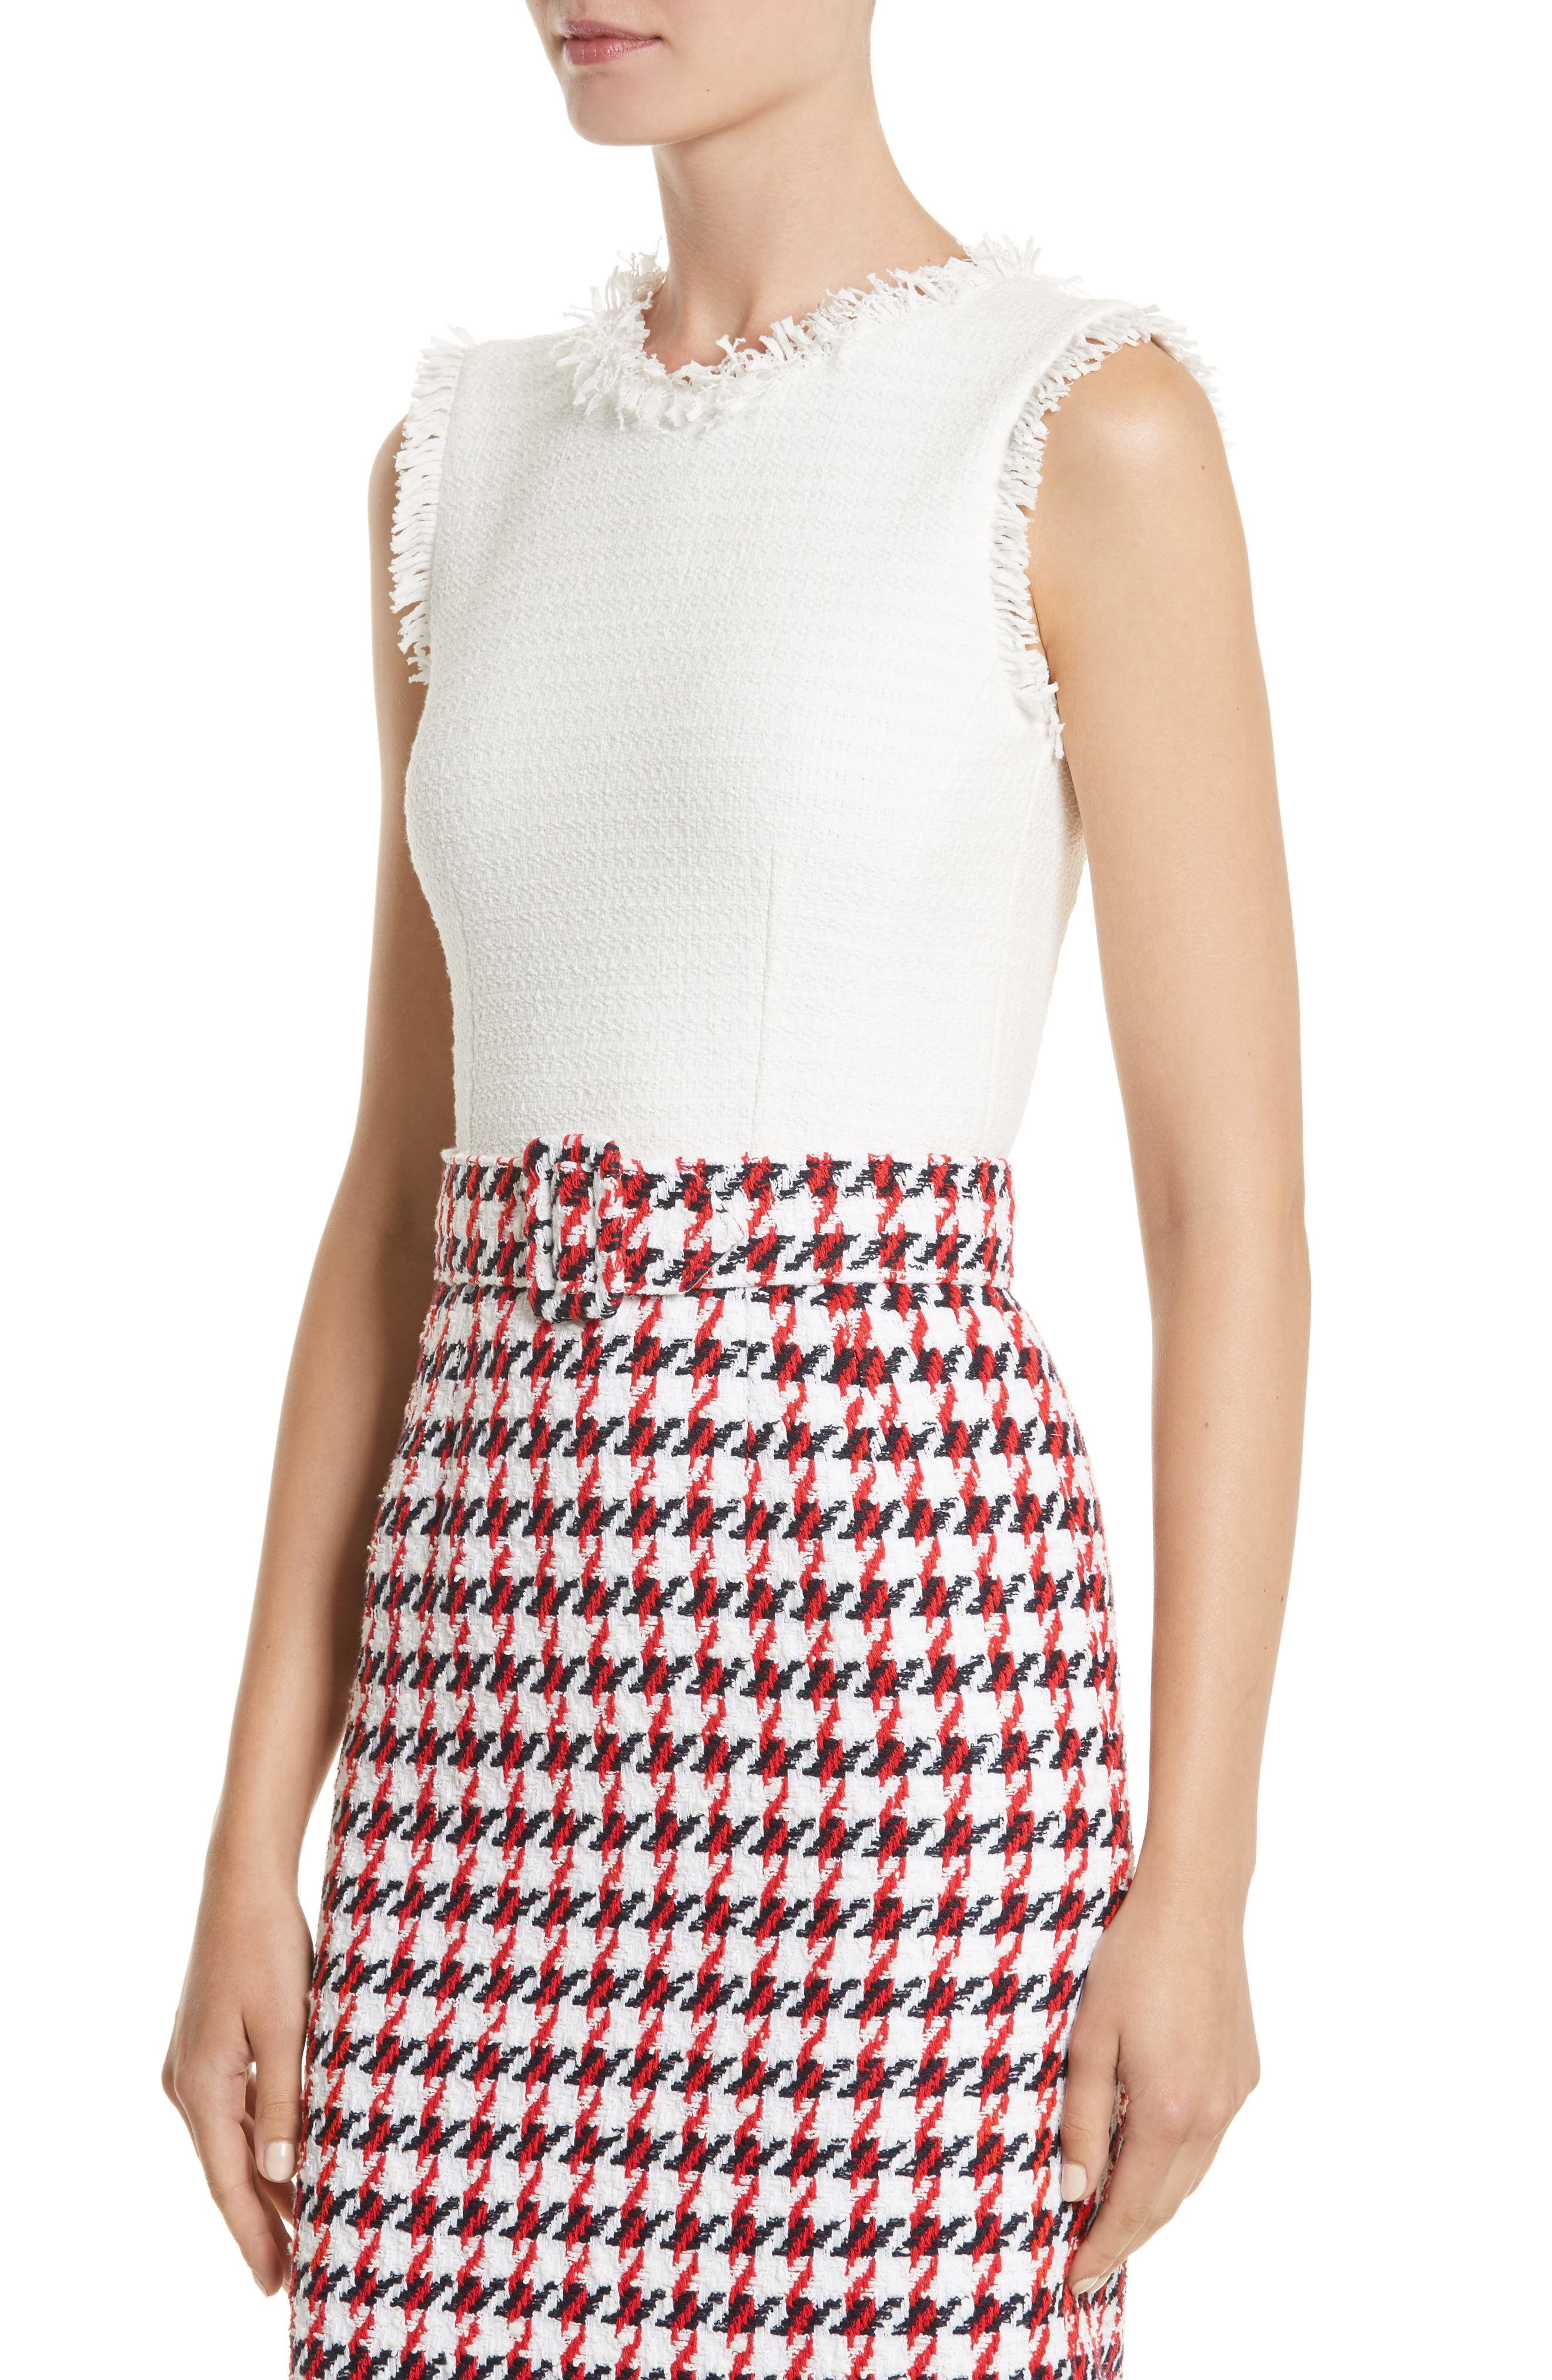 Bicolor Houndstooth Tweed Dress,                             Alternate thumbnail 4, color,